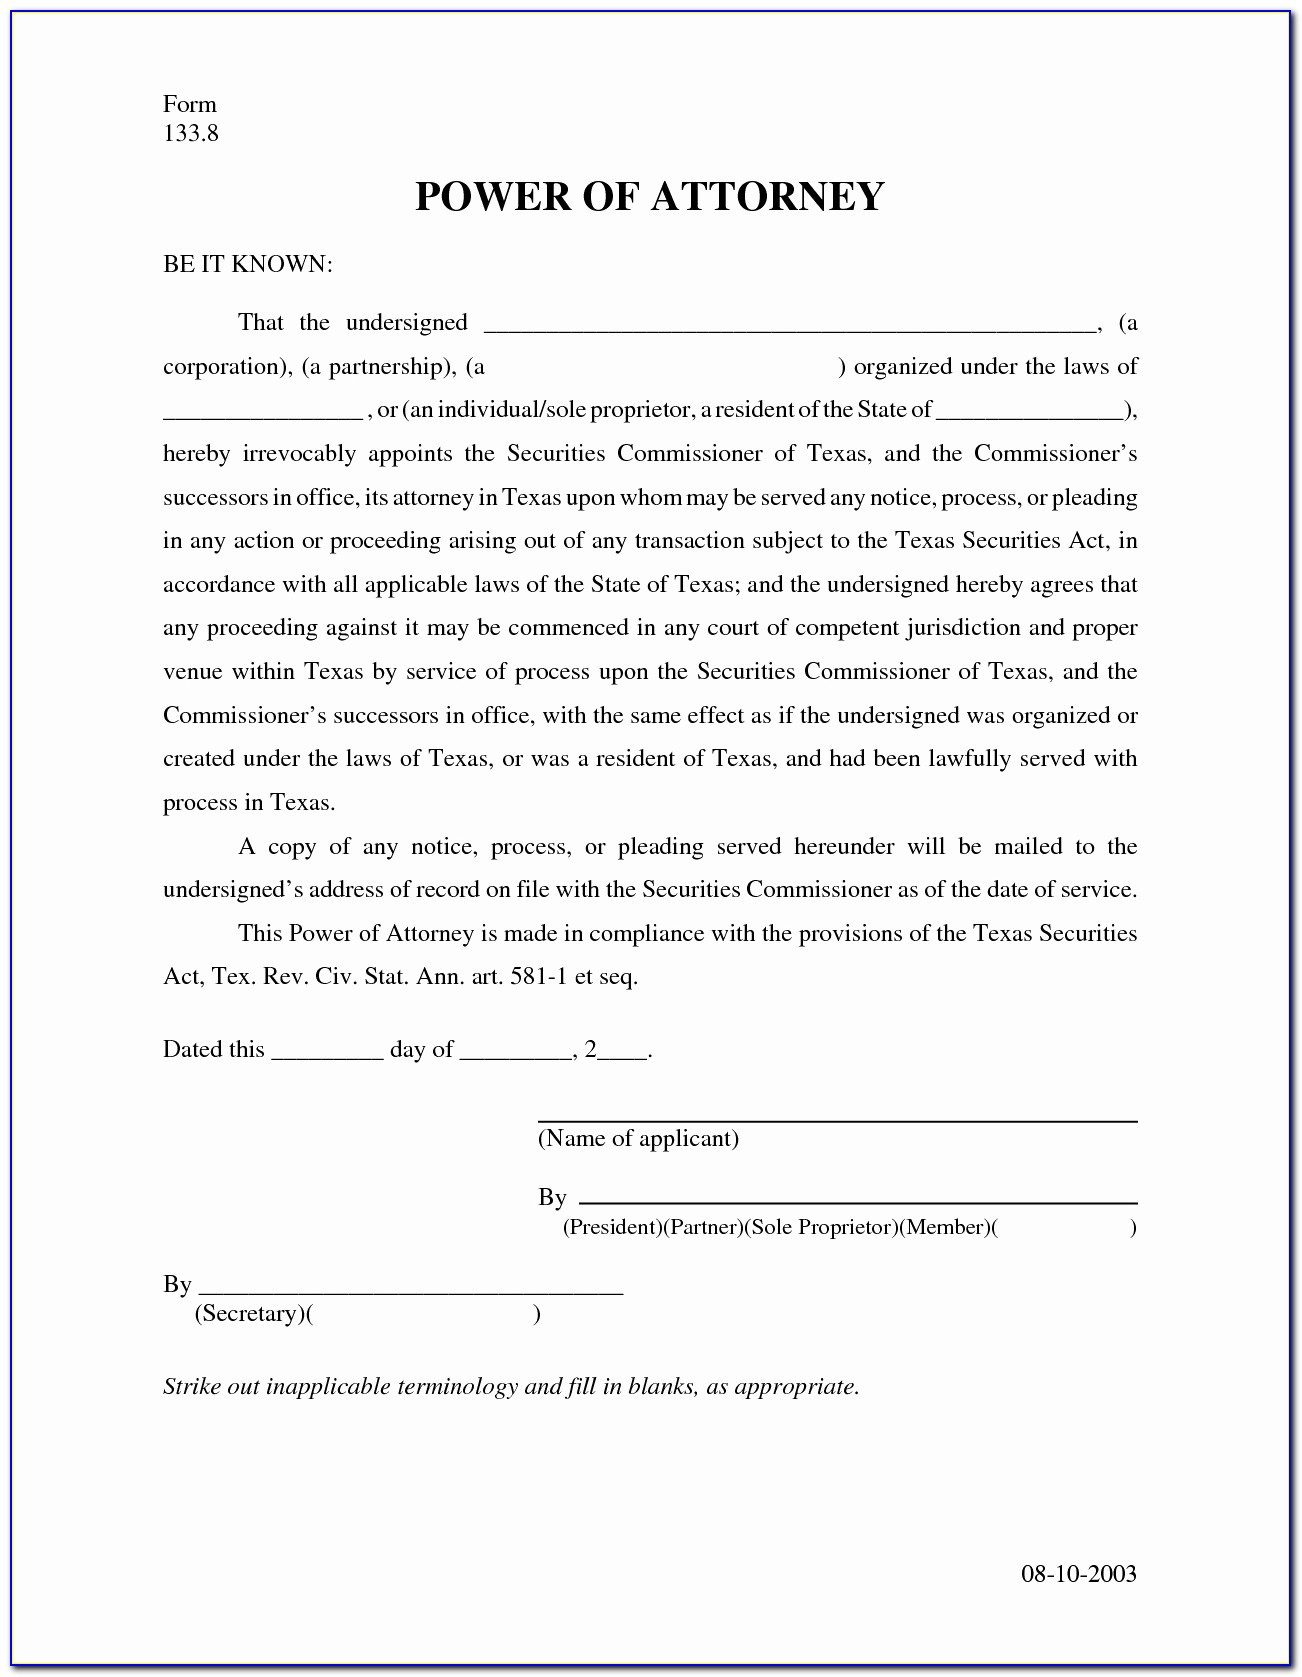 Georgia Health Care Power Of Attorney Form Lovely 50 Elegant Georgia Health Care Power Attorney Form Documents